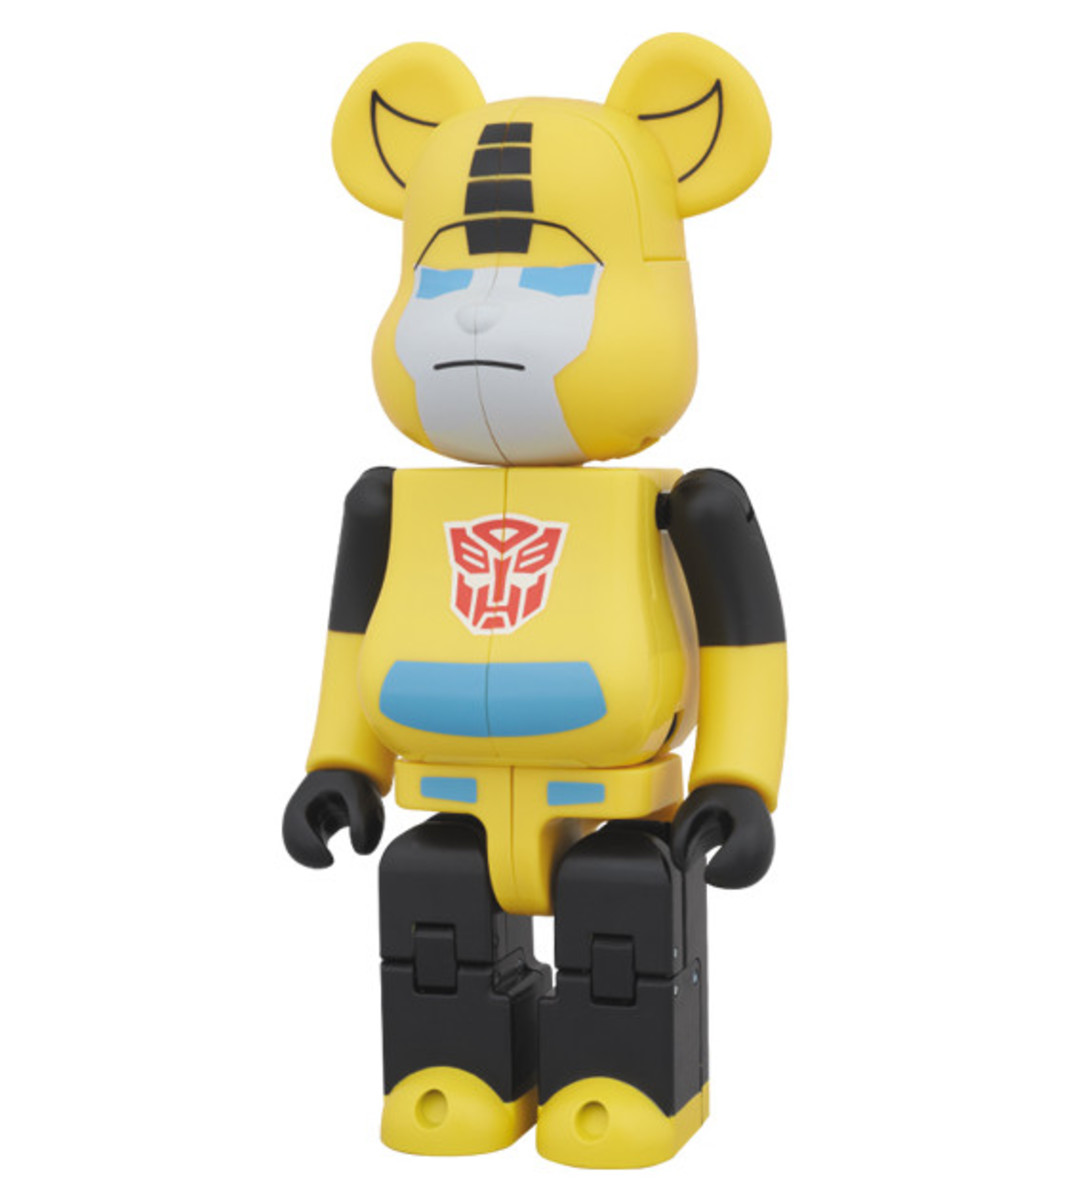 transformers-medicom-toy-transformable-bearbrick-200-percent-set-02